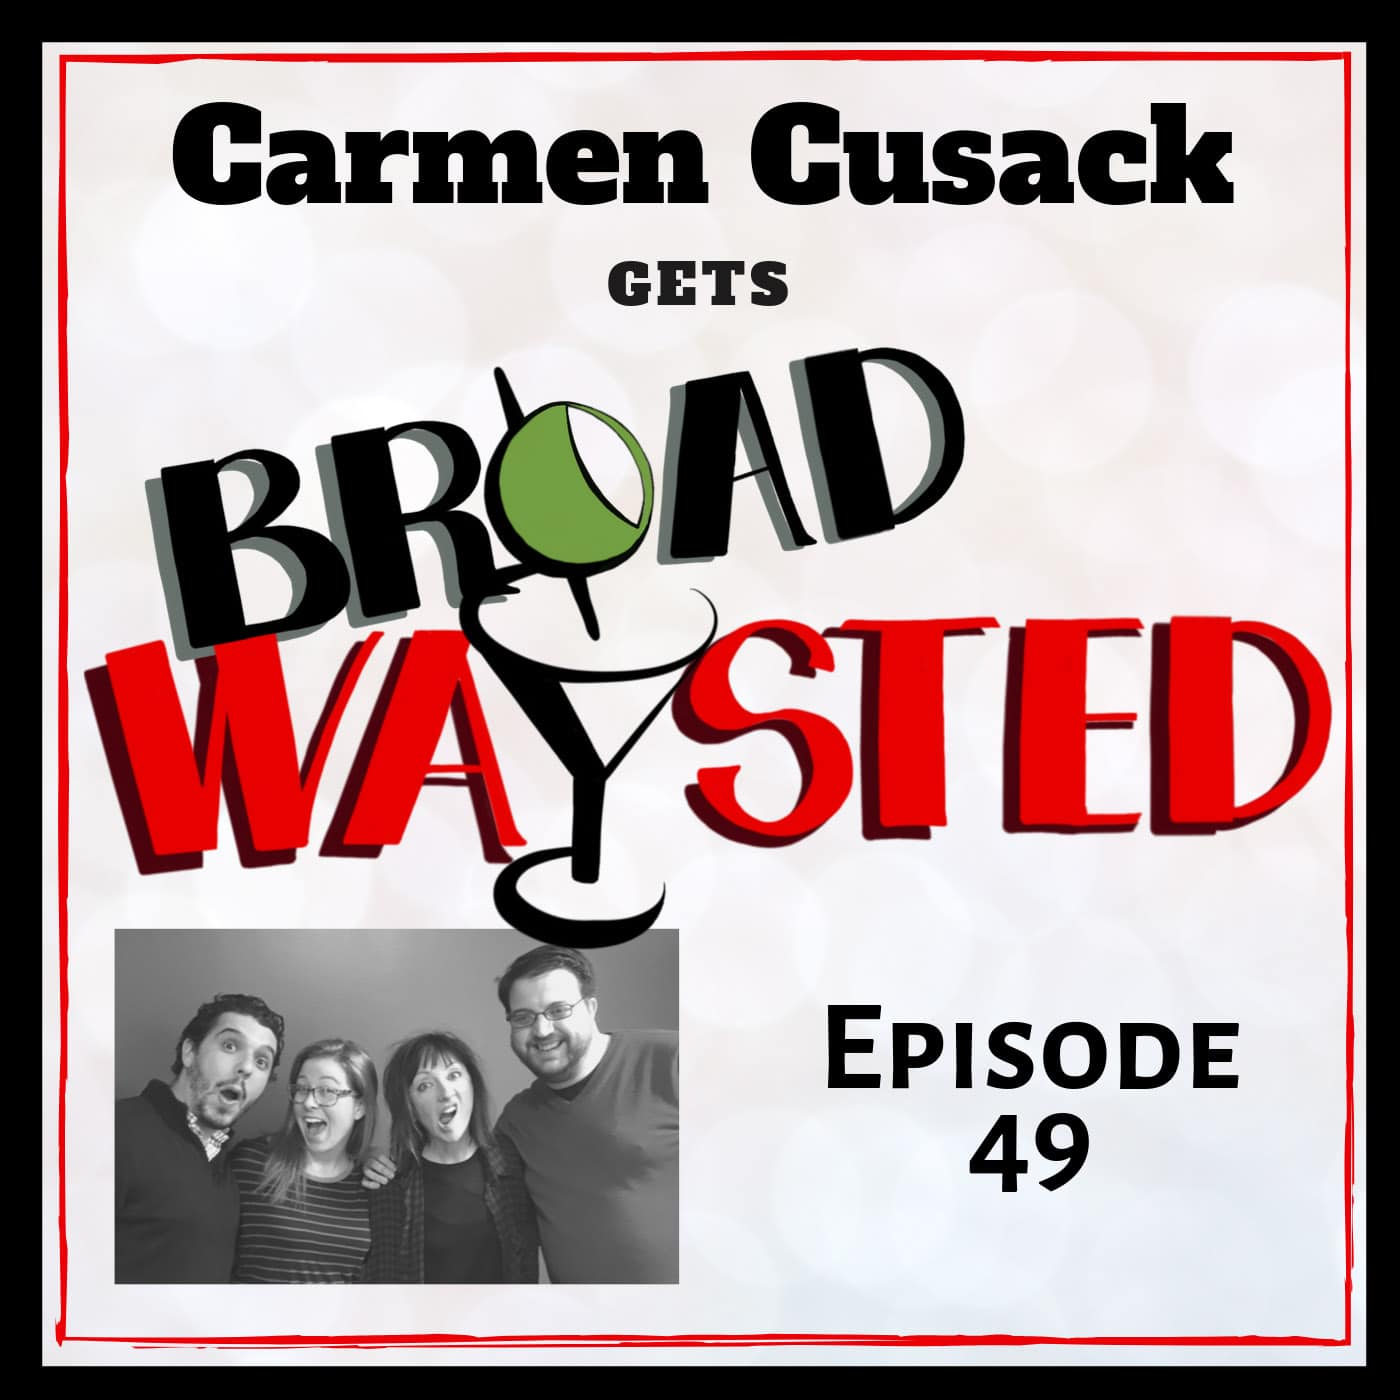 Broadwaysted Ep 49 Carmen Cusack